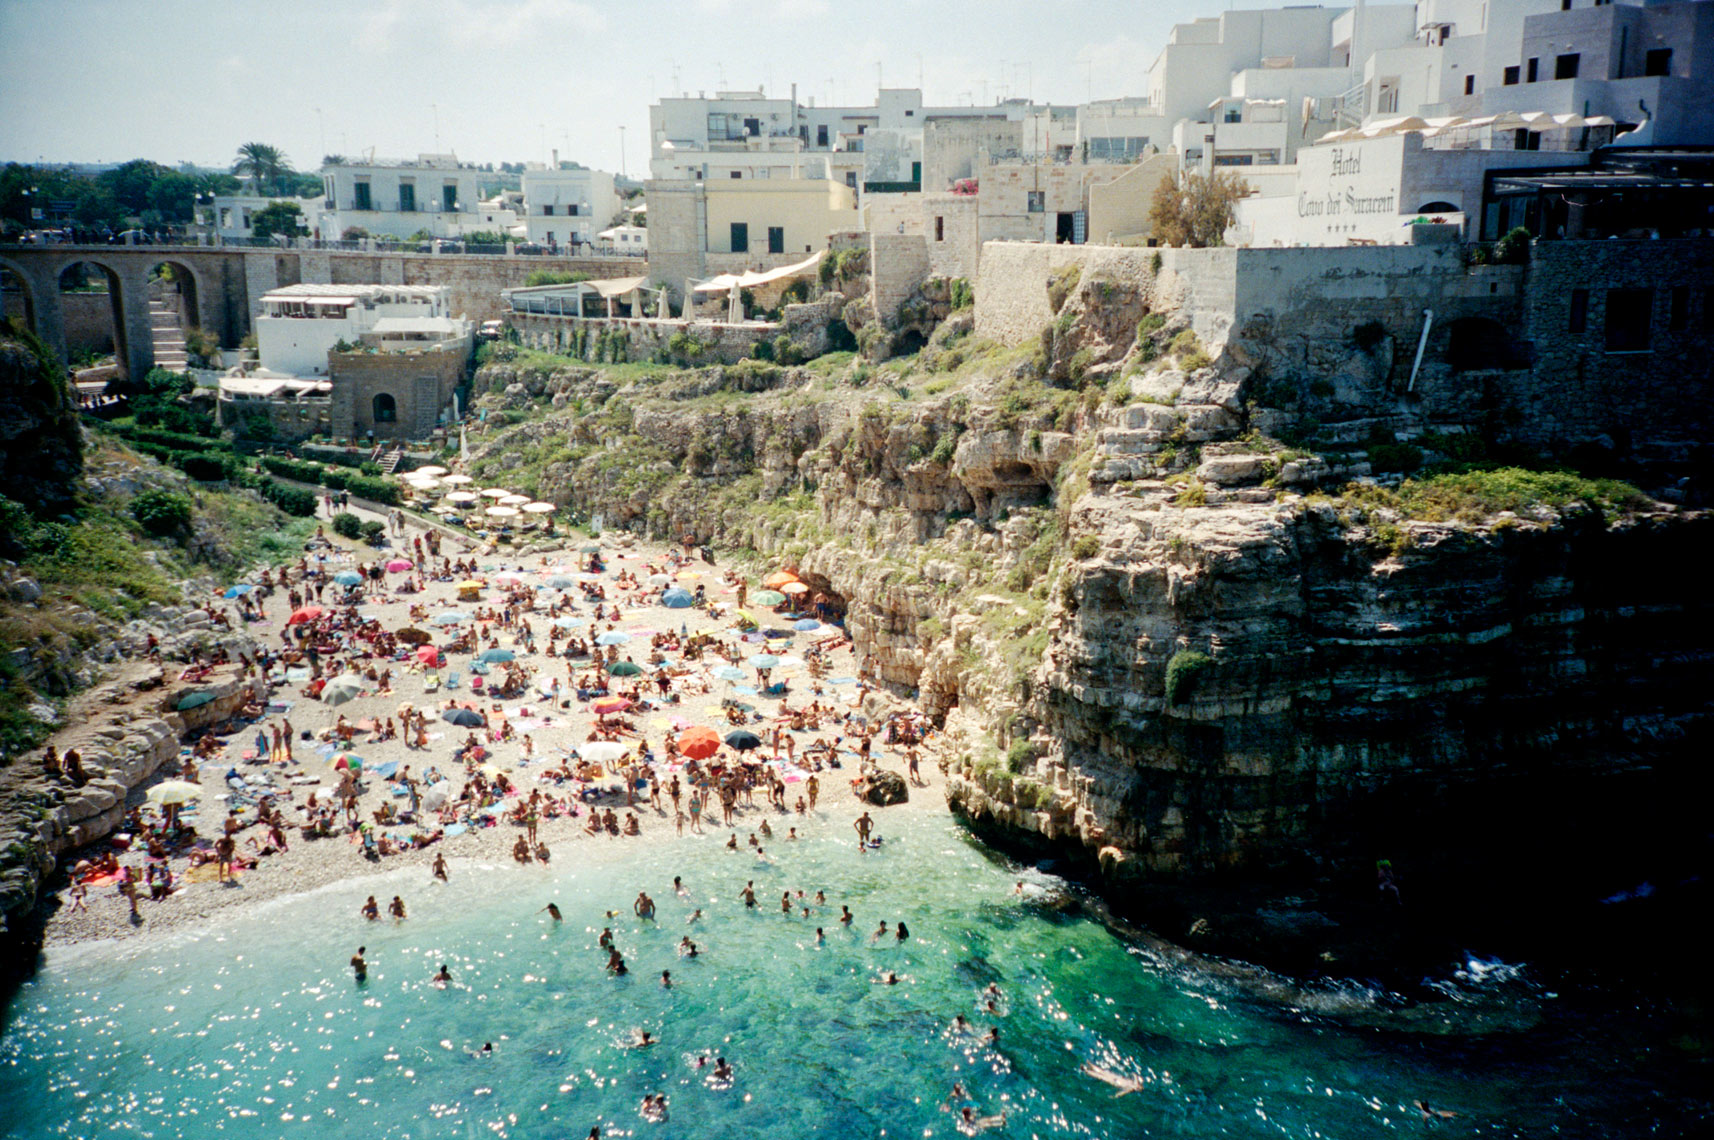 swimming in Adriatic Sea off Polignano a Mare Apulia